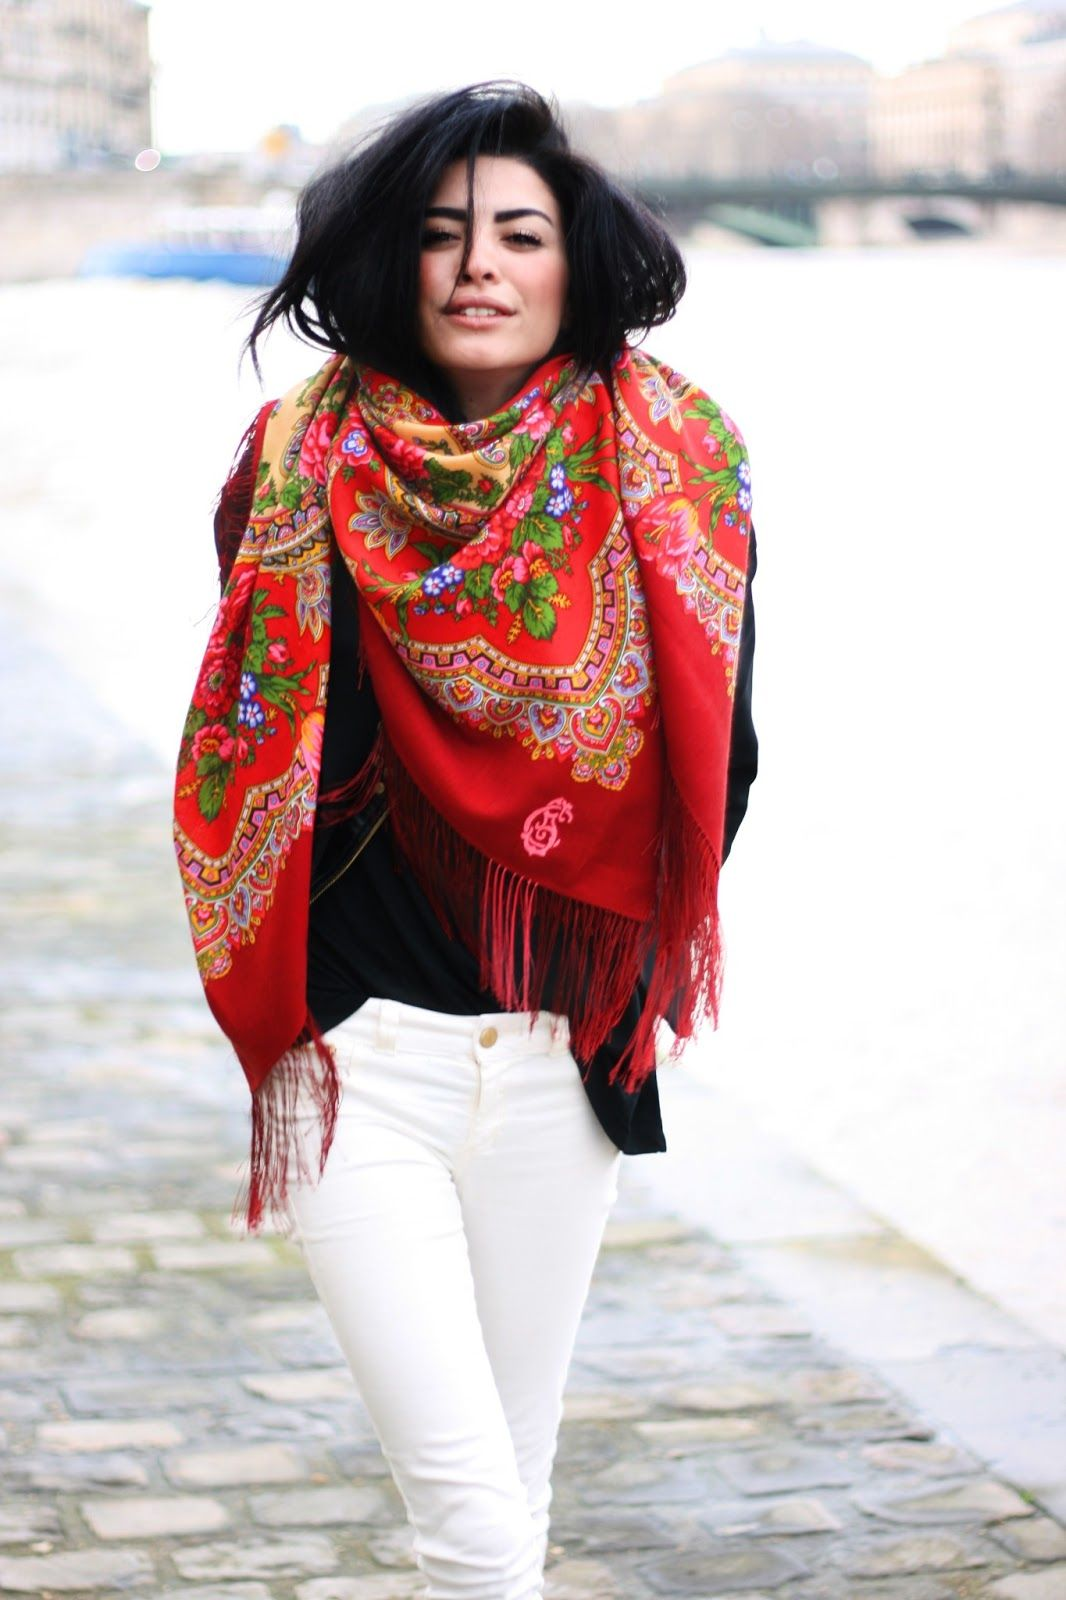 Big scarf. I love this folklorish pattern and colour!